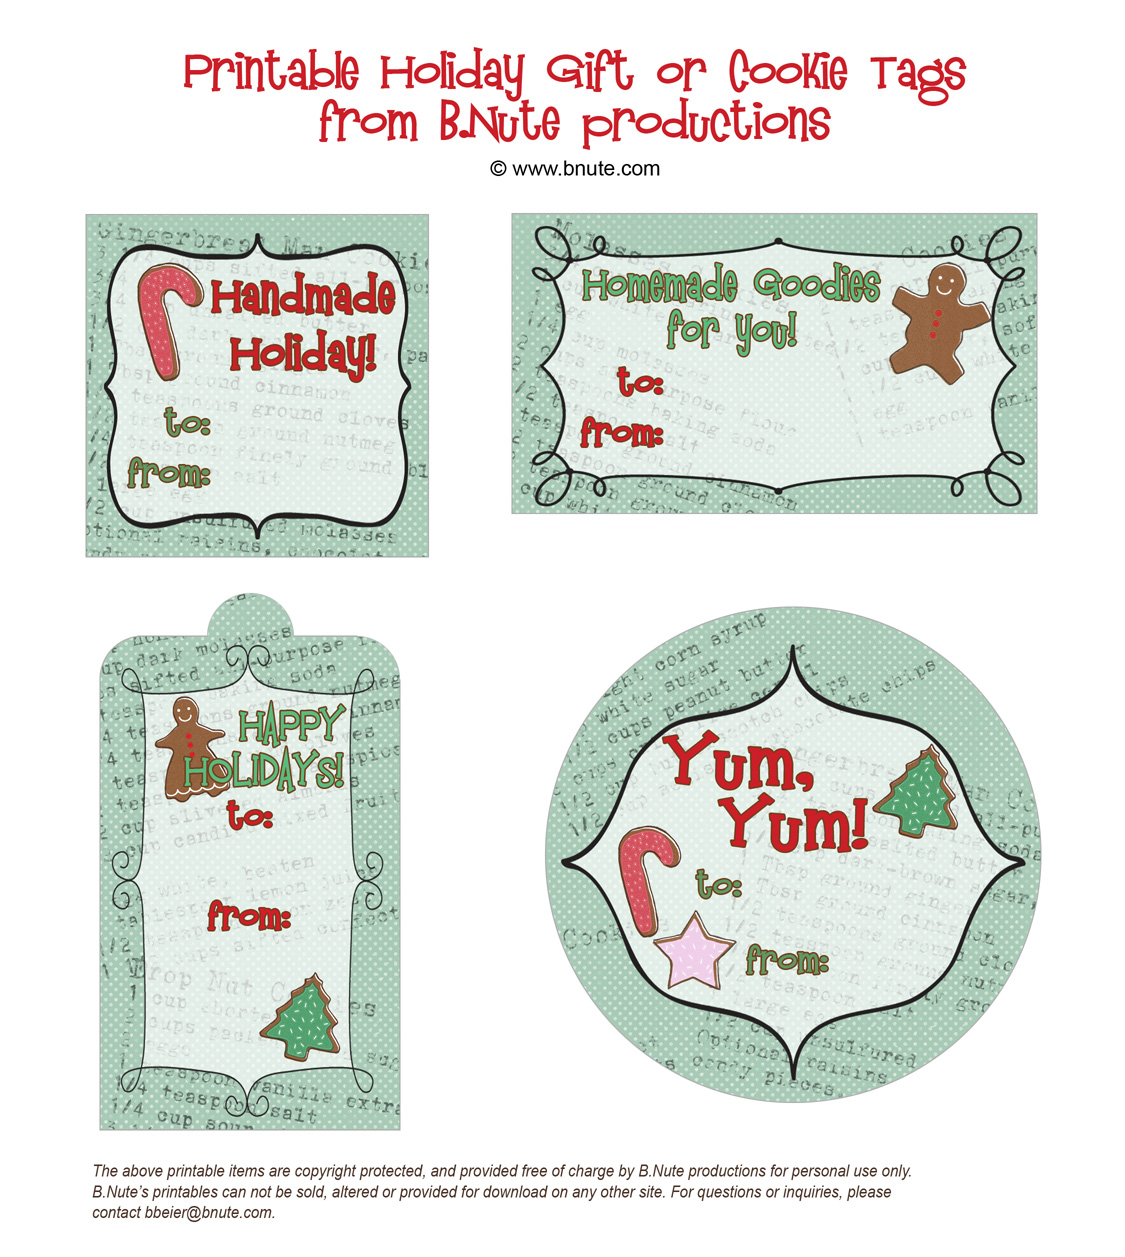 photograph relating to Free Printable Holiday Tags referred to as bnute productions: Cost-free Printable Getaway Reward Tags